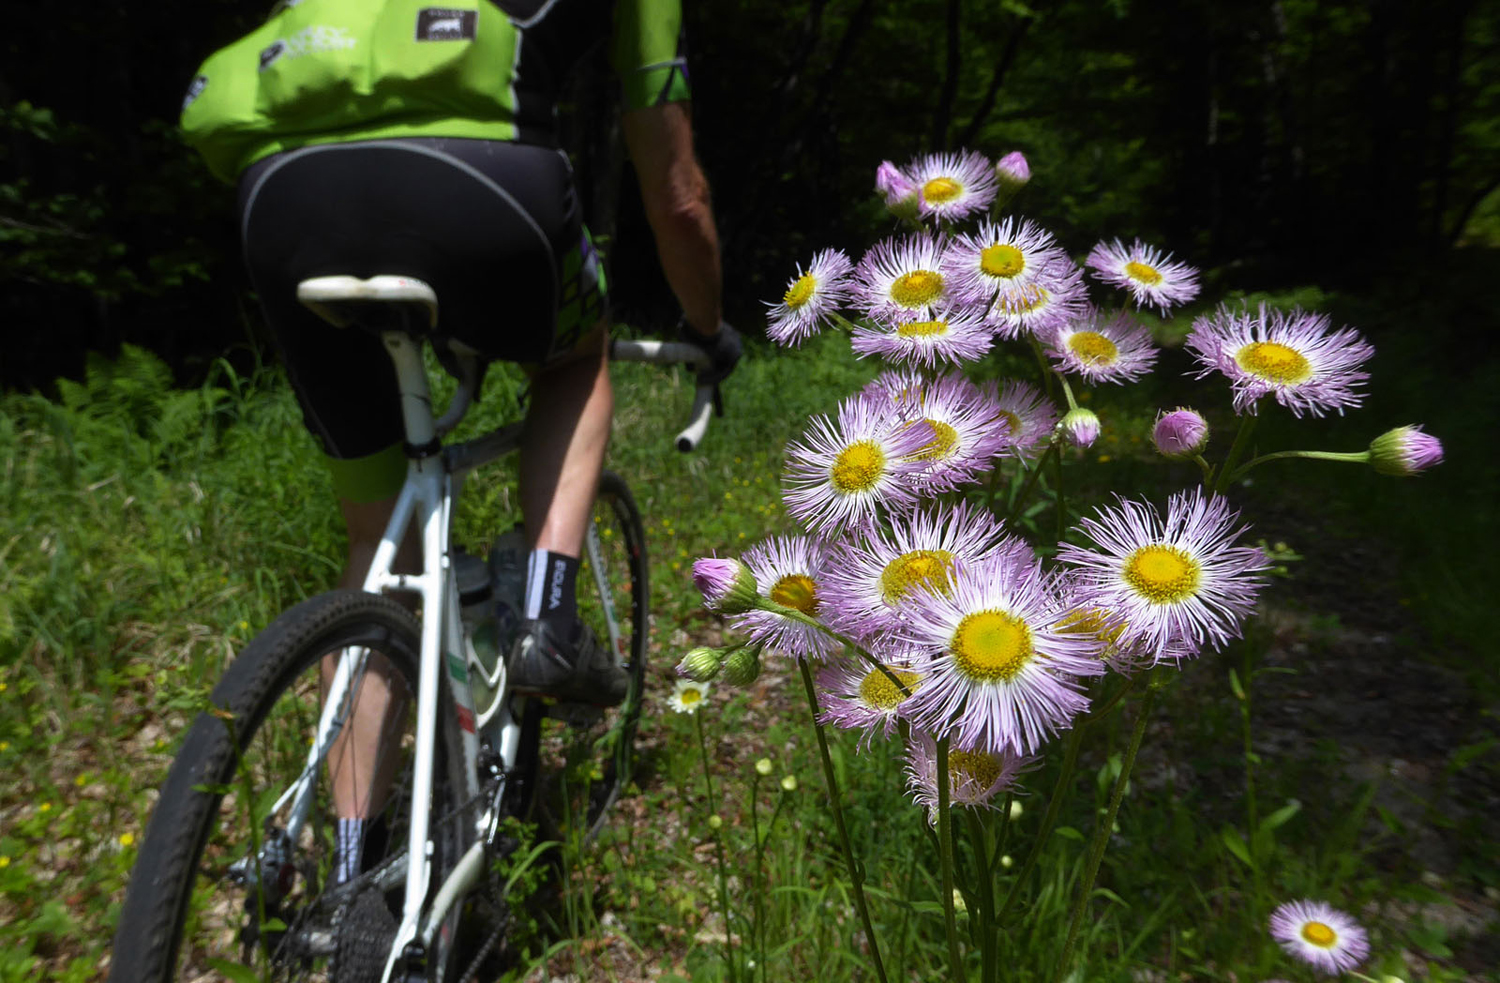 It's easy to find a wide variety of wildflowers blooming as you ride down the forest roads. © Dave Kraus/ Krausgrafik.com